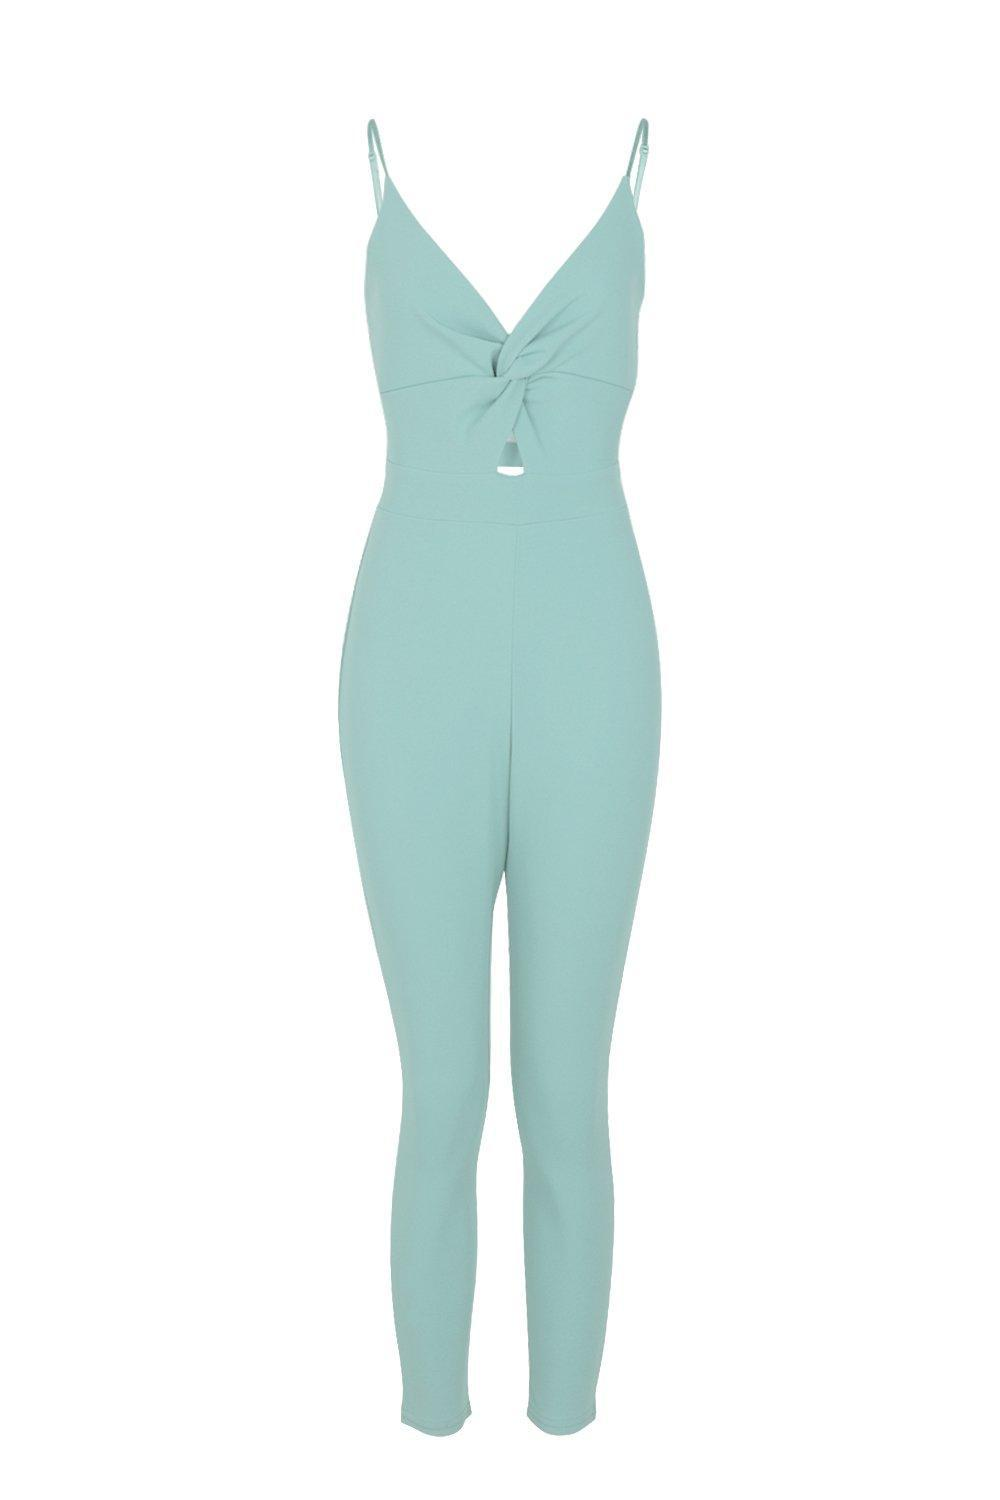 7ce7fda232e4 Boohoo Petite Knot Front Strappy Tapered Jumpsuit - Lyst